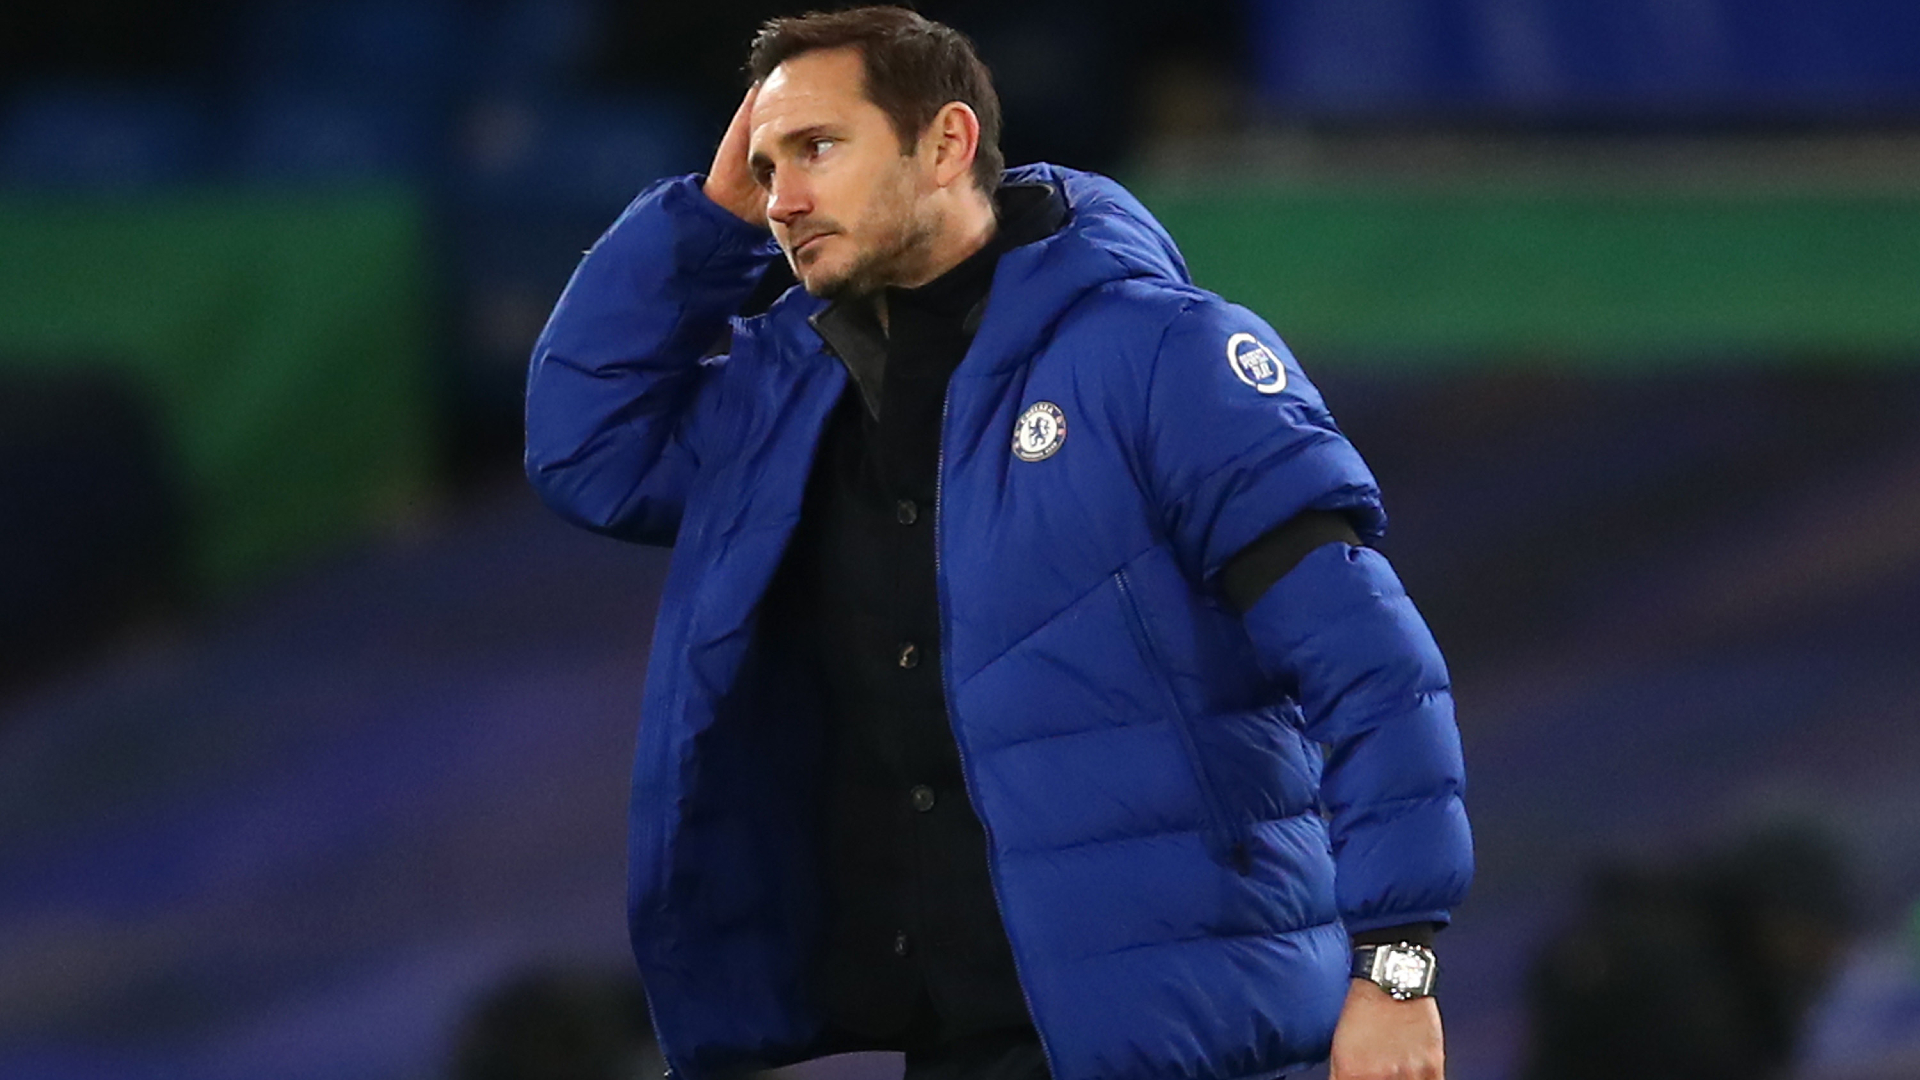 Lampard pleads for patience after Man City defeat leaves Chelsea boss under pressure